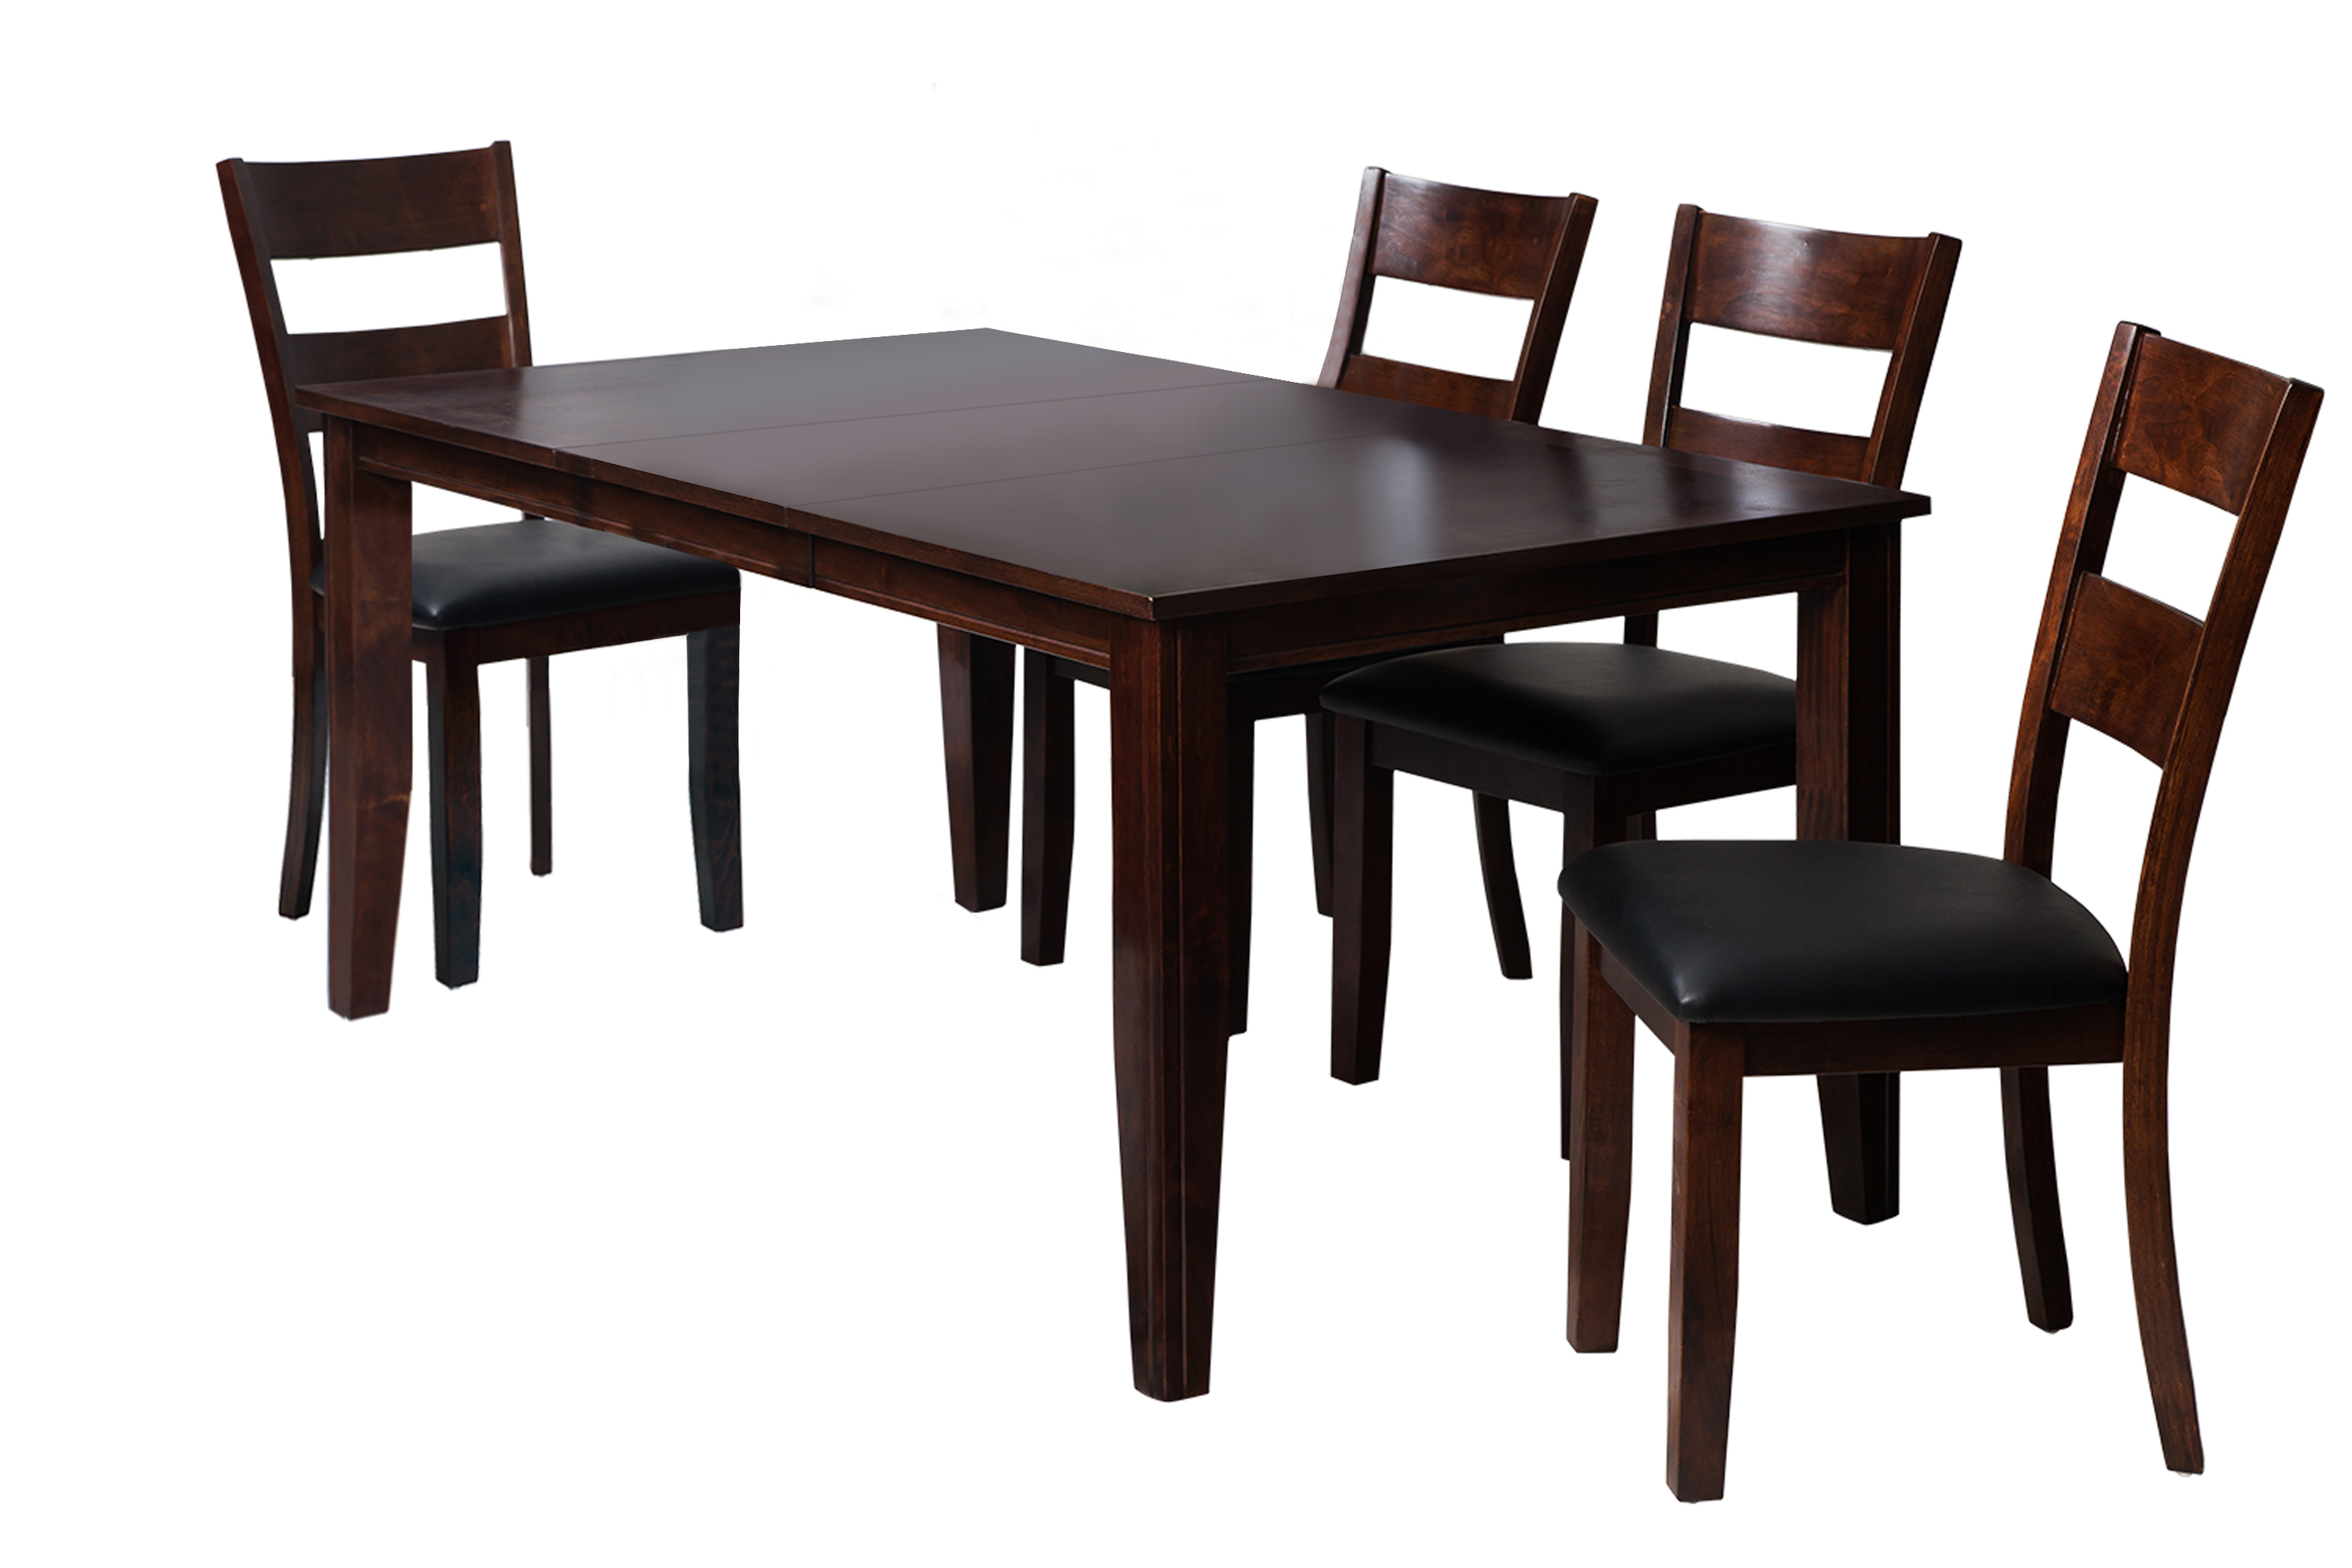 Ttp Furnish Regarding Most Up To Date Adan 5 Piece Solid Wood Dining Sets (Set Of 5) (Image 19 of 20)